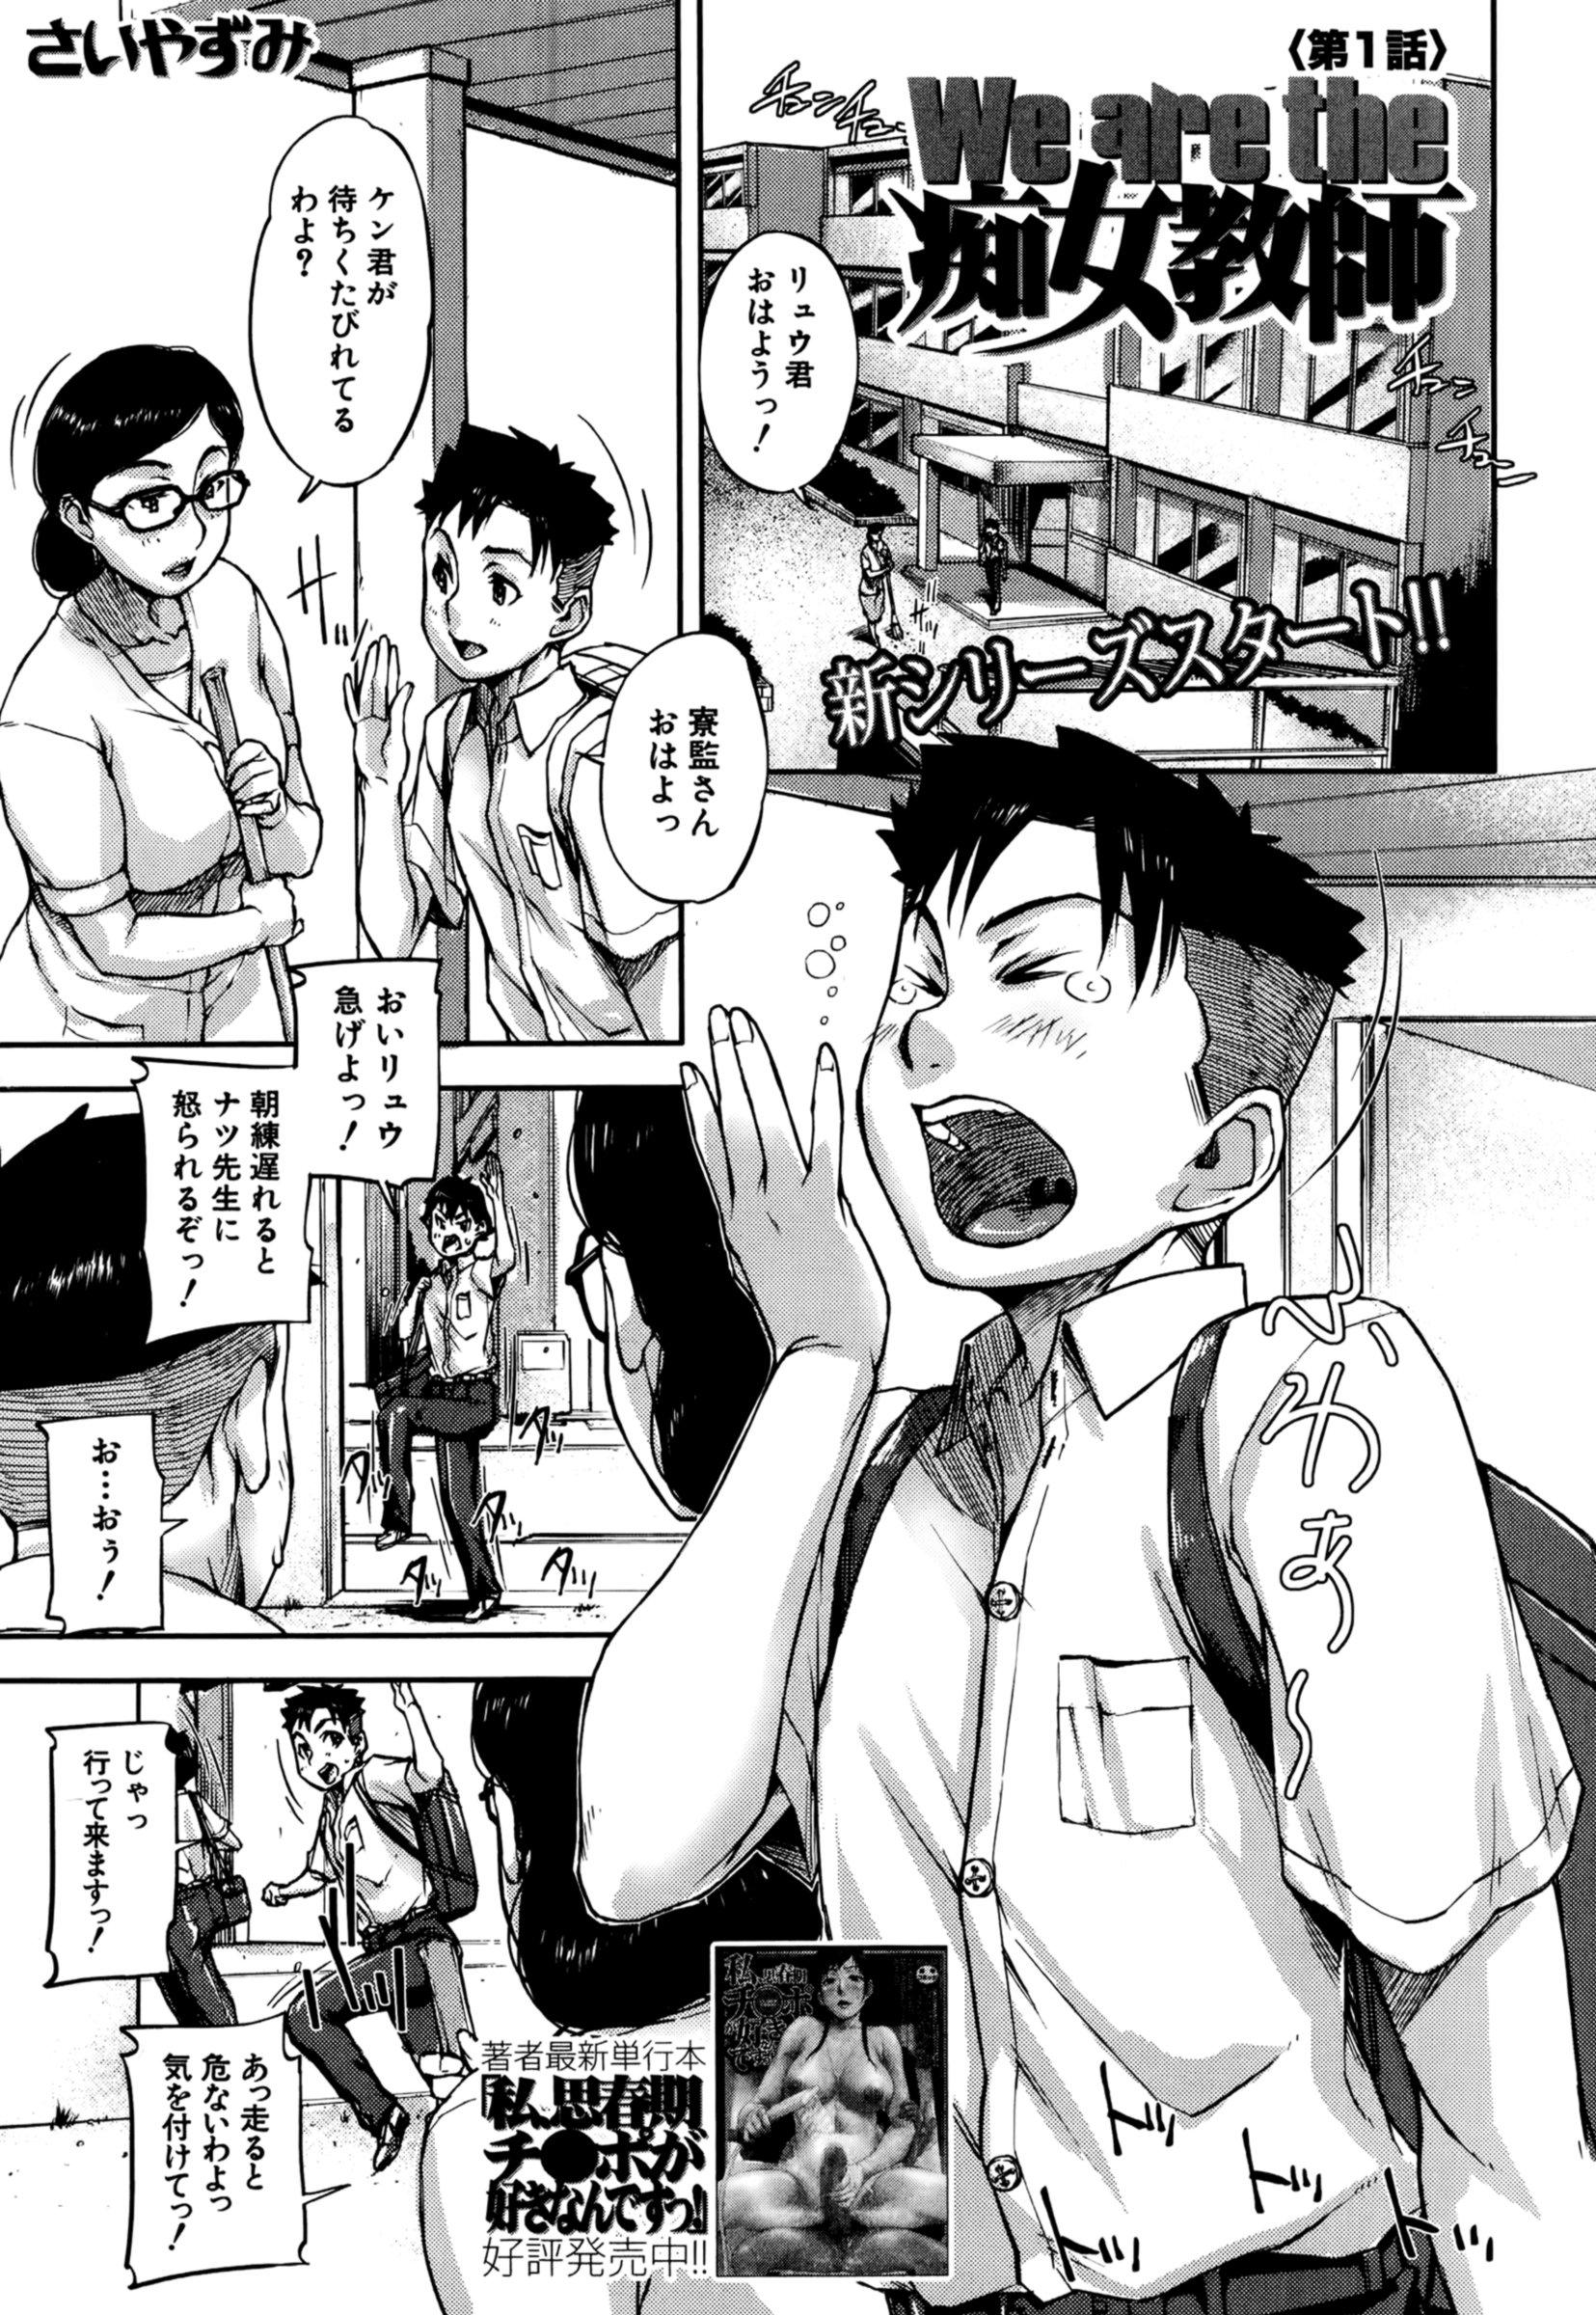 We are the Chijo Kyoushi Ch. 1-2 0